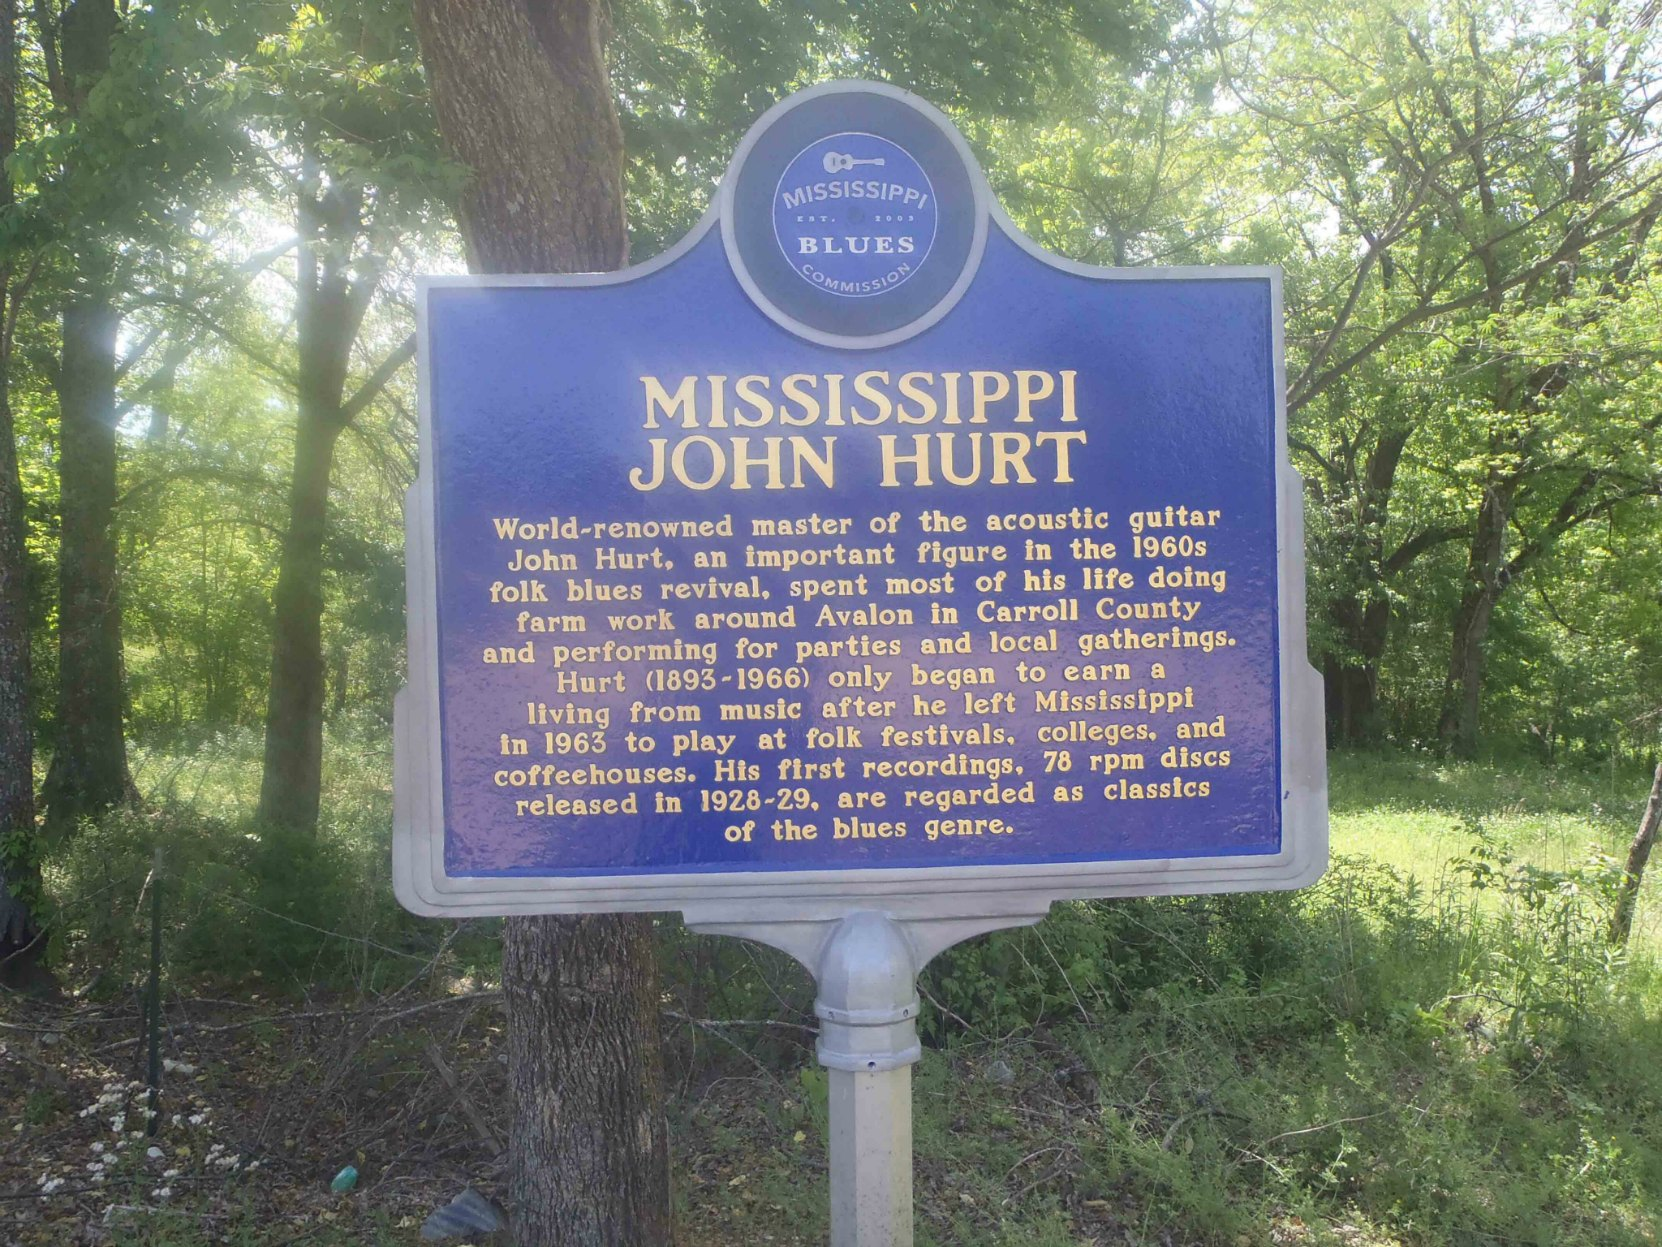 Mississippi Blues Trail marker for Mississippi John Hurt